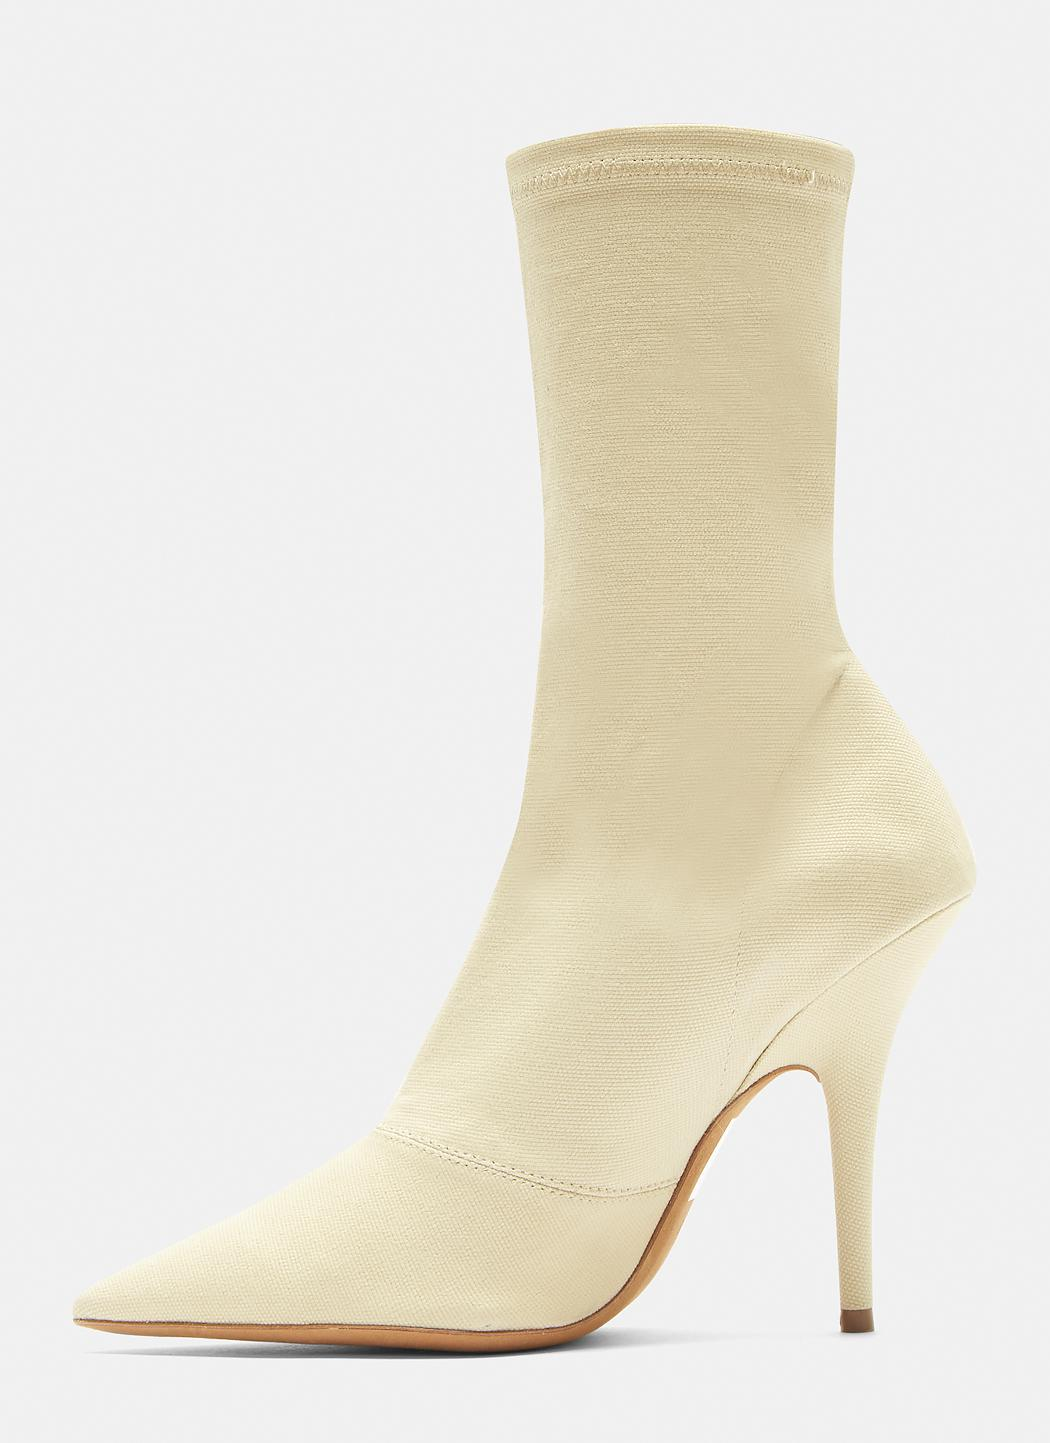 98f1e20b7 Lyst - Yeezy Canvas Ankle Boot 110mm Heel In Chalk in Natural